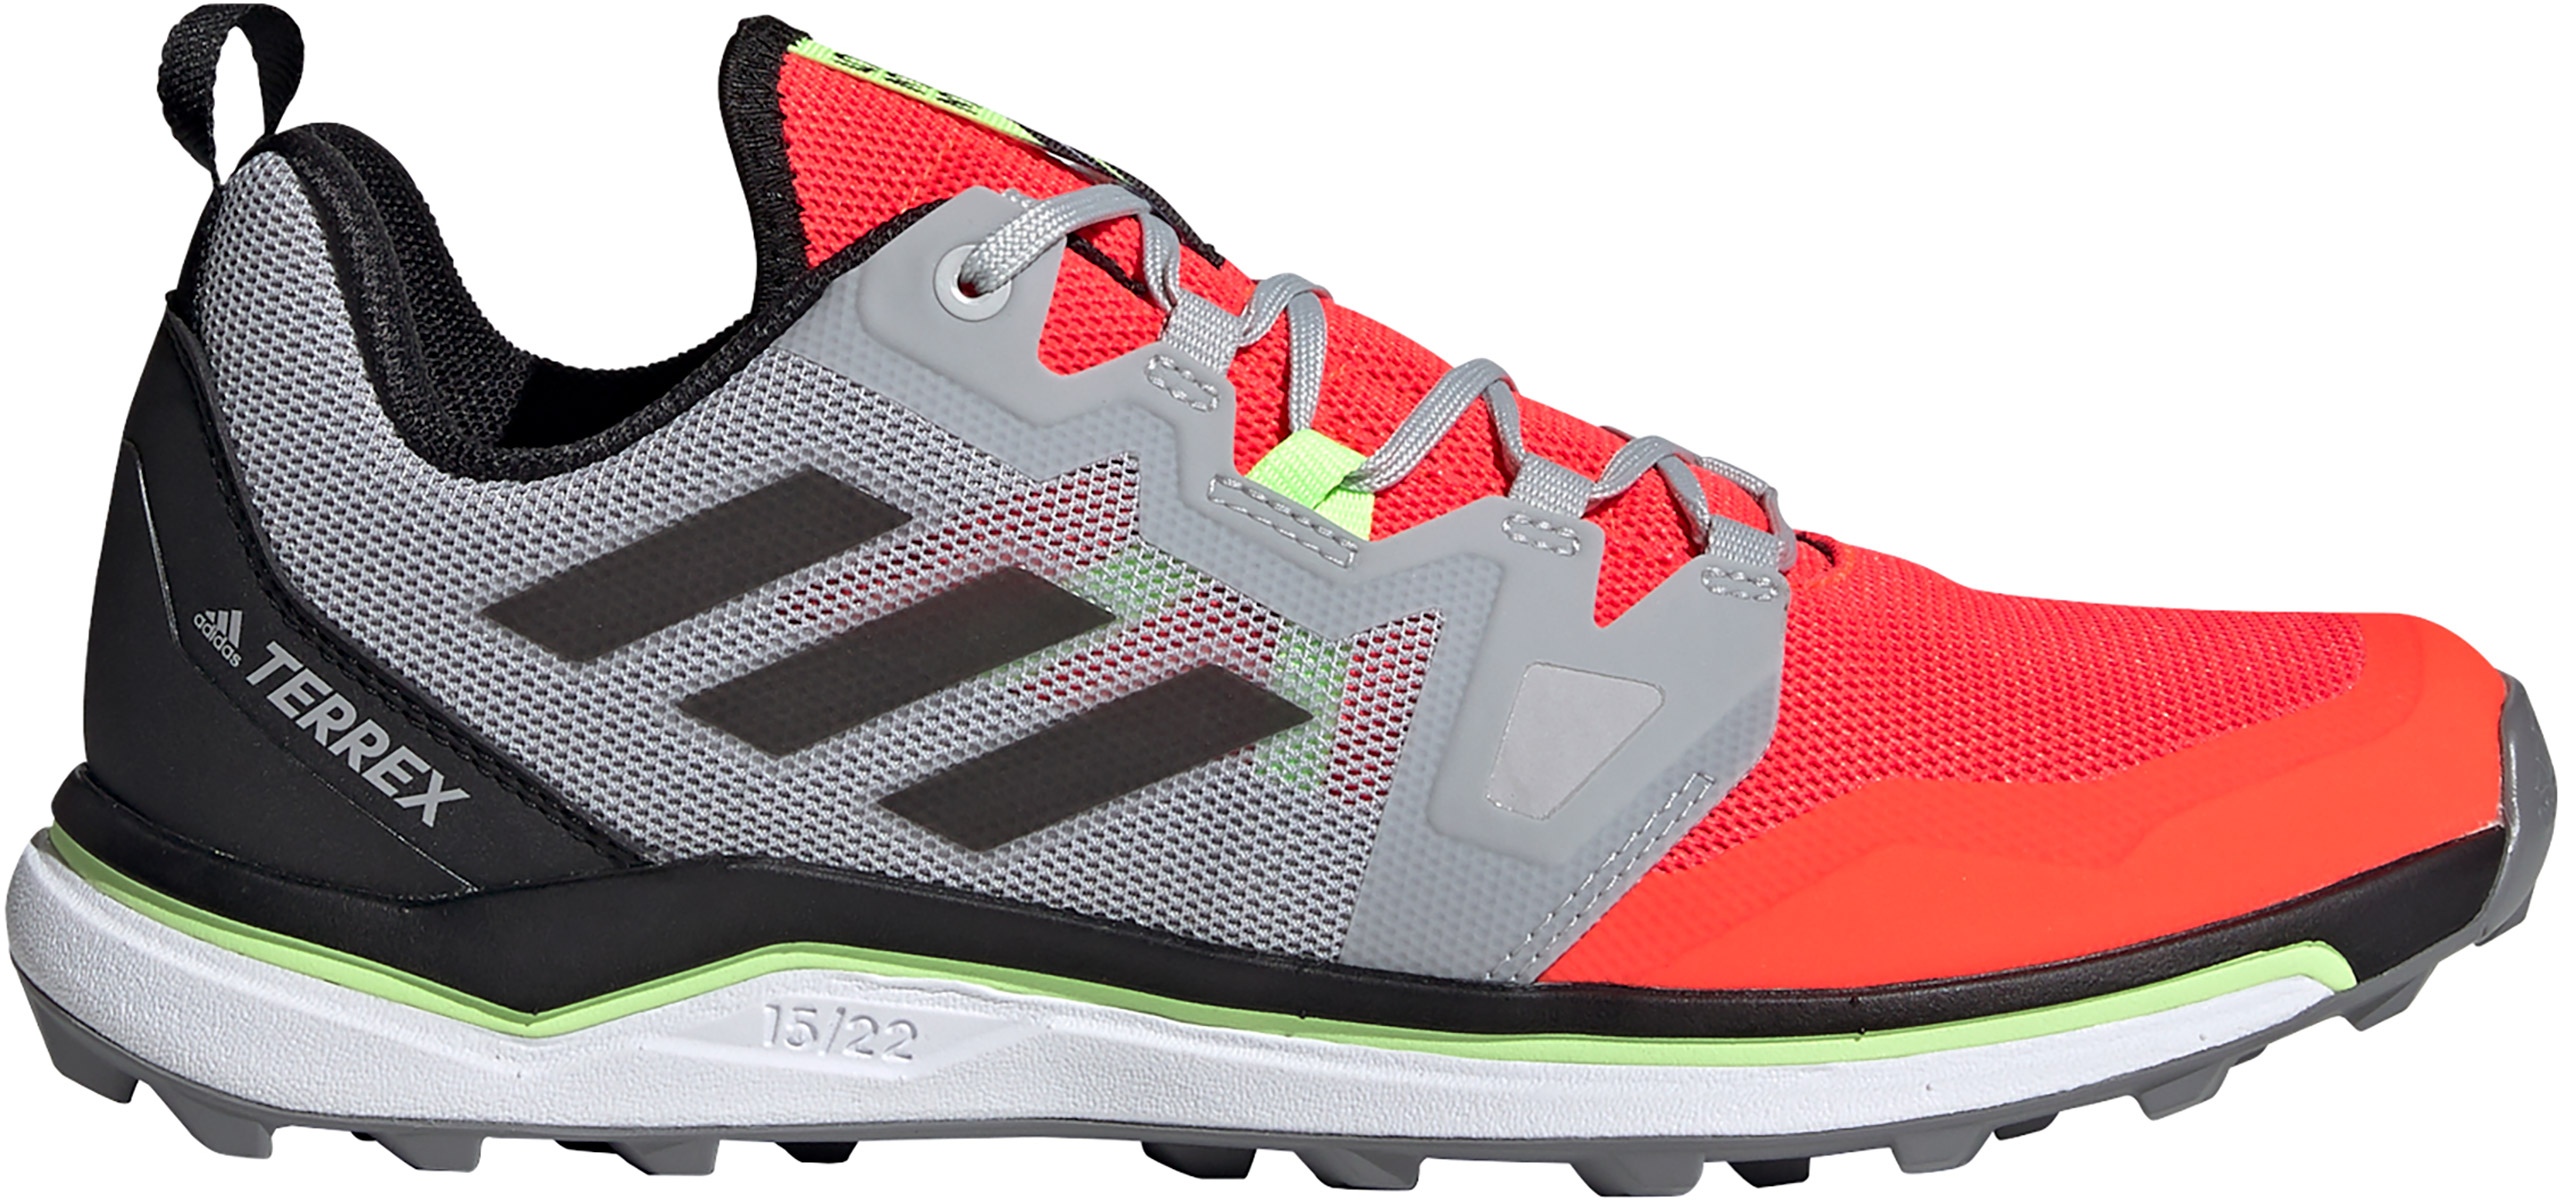 Adidas - Terrex Agravic Trail | cycling shoes